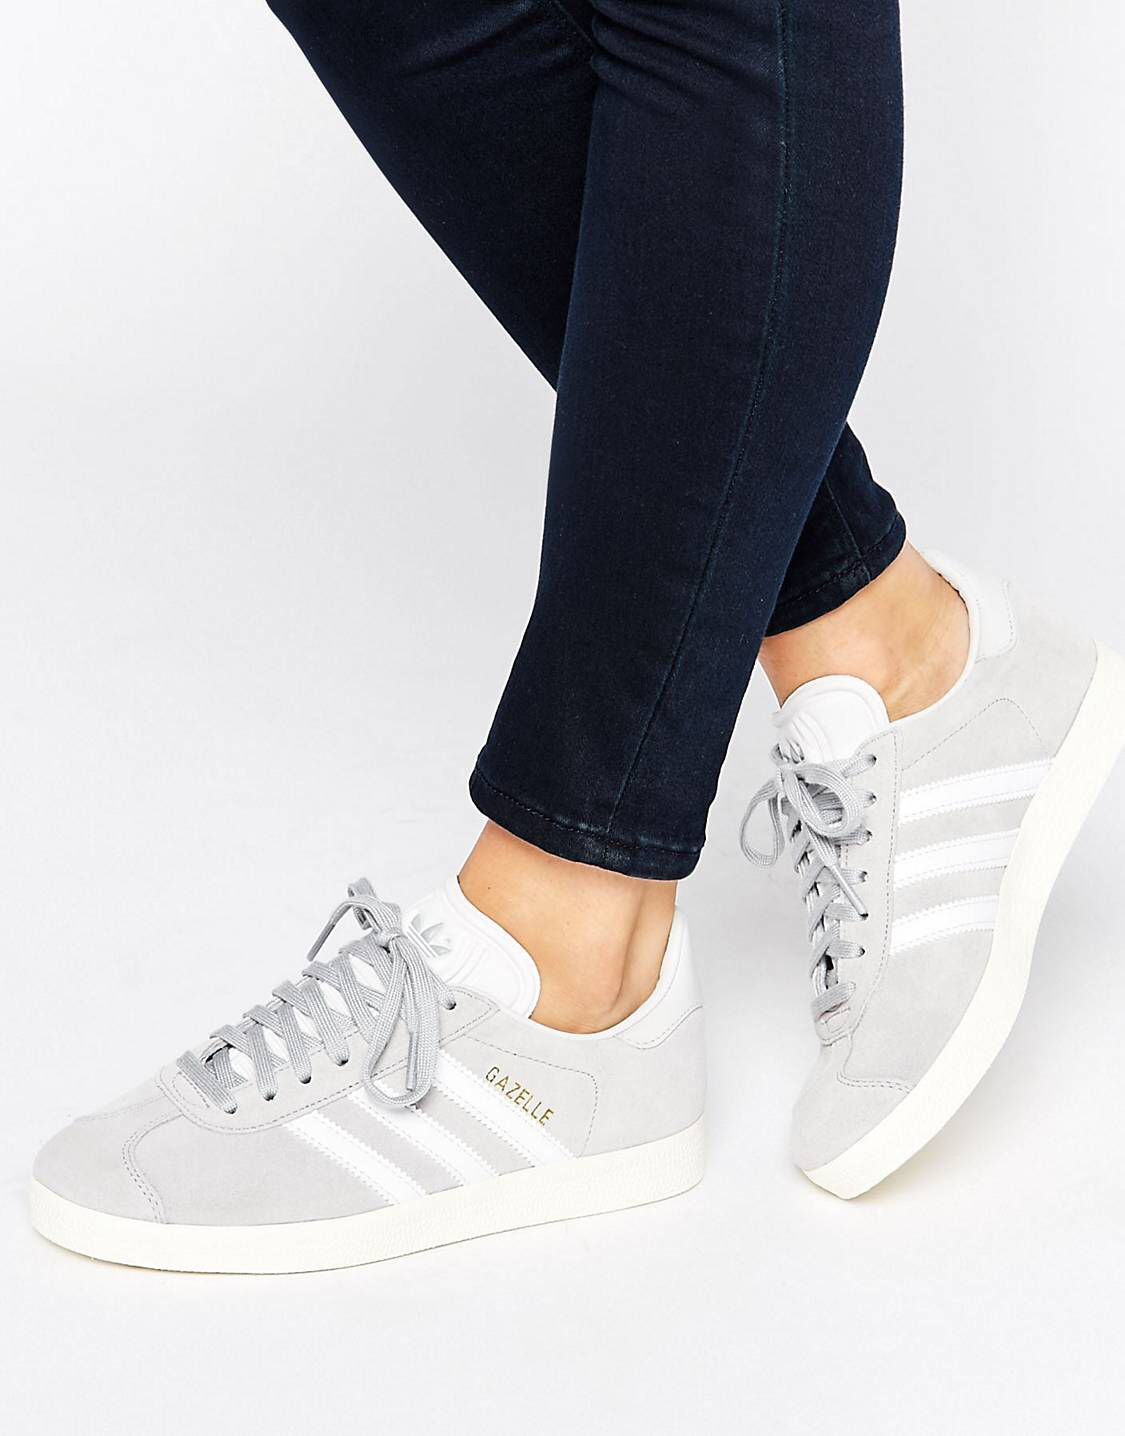 Favori Mode Lifestyle femme ADIDAS ORIGINALS Basket adidas